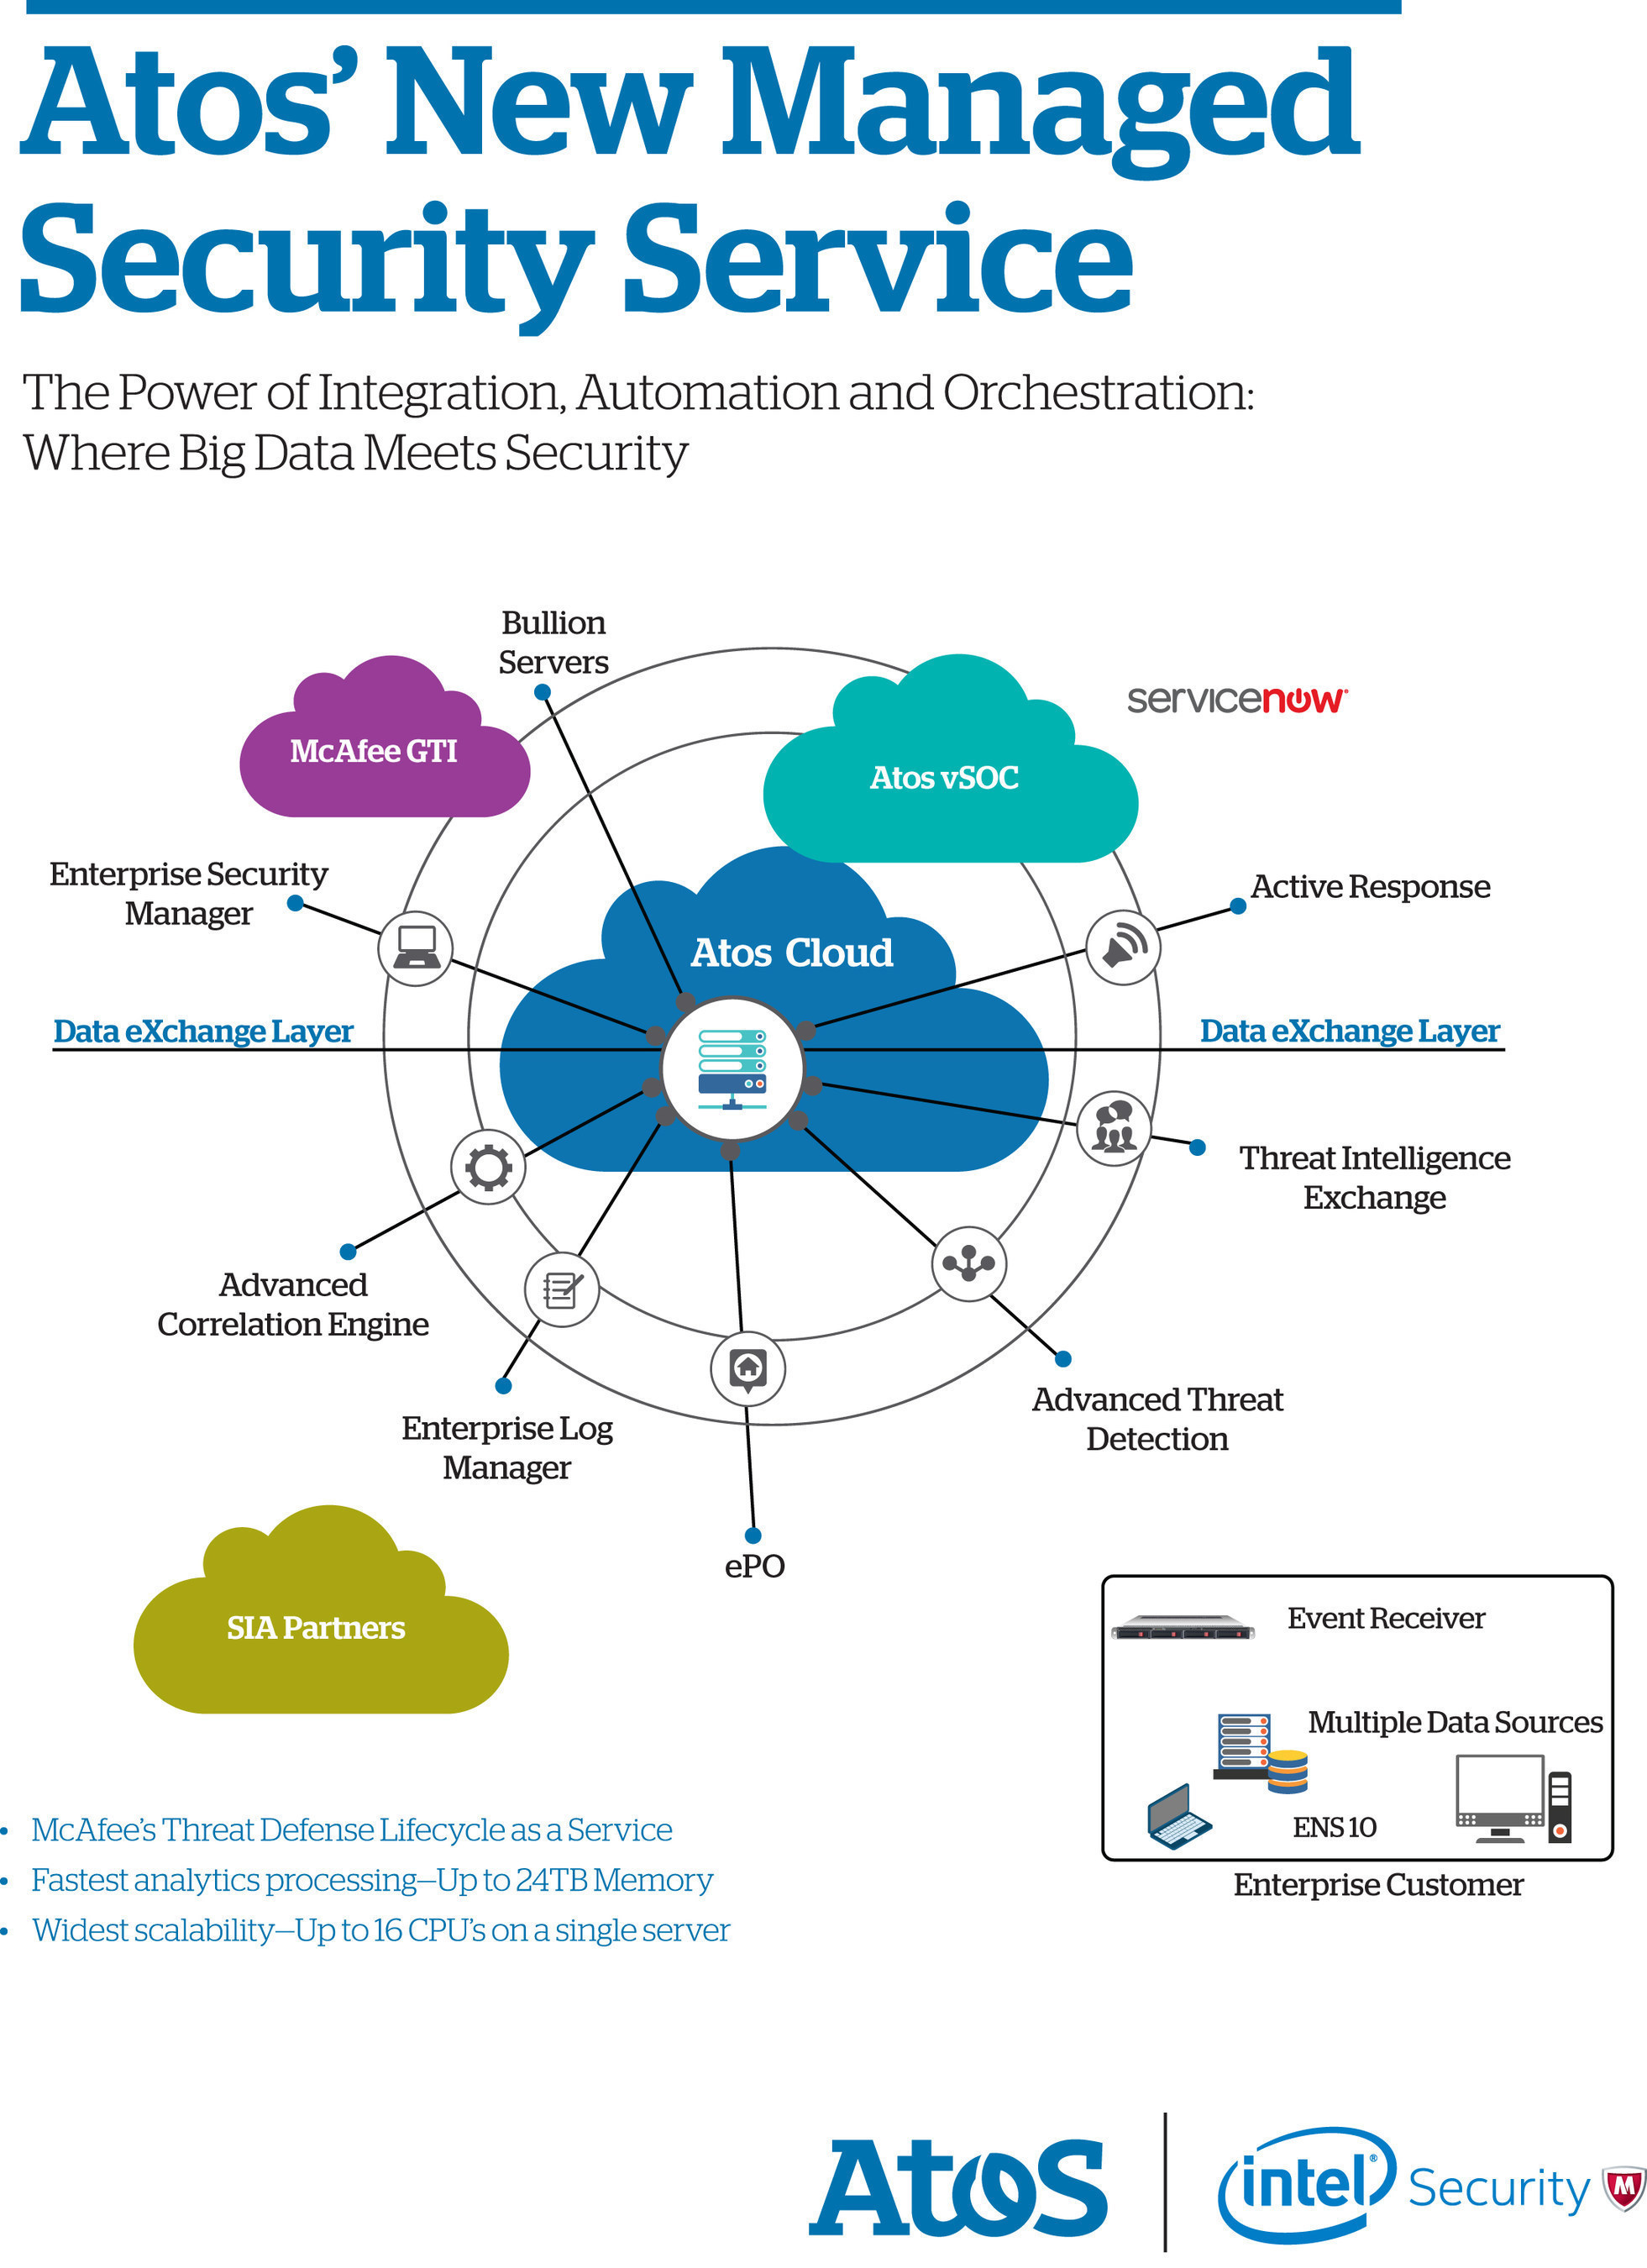 Atos and Intel launch managed security offering